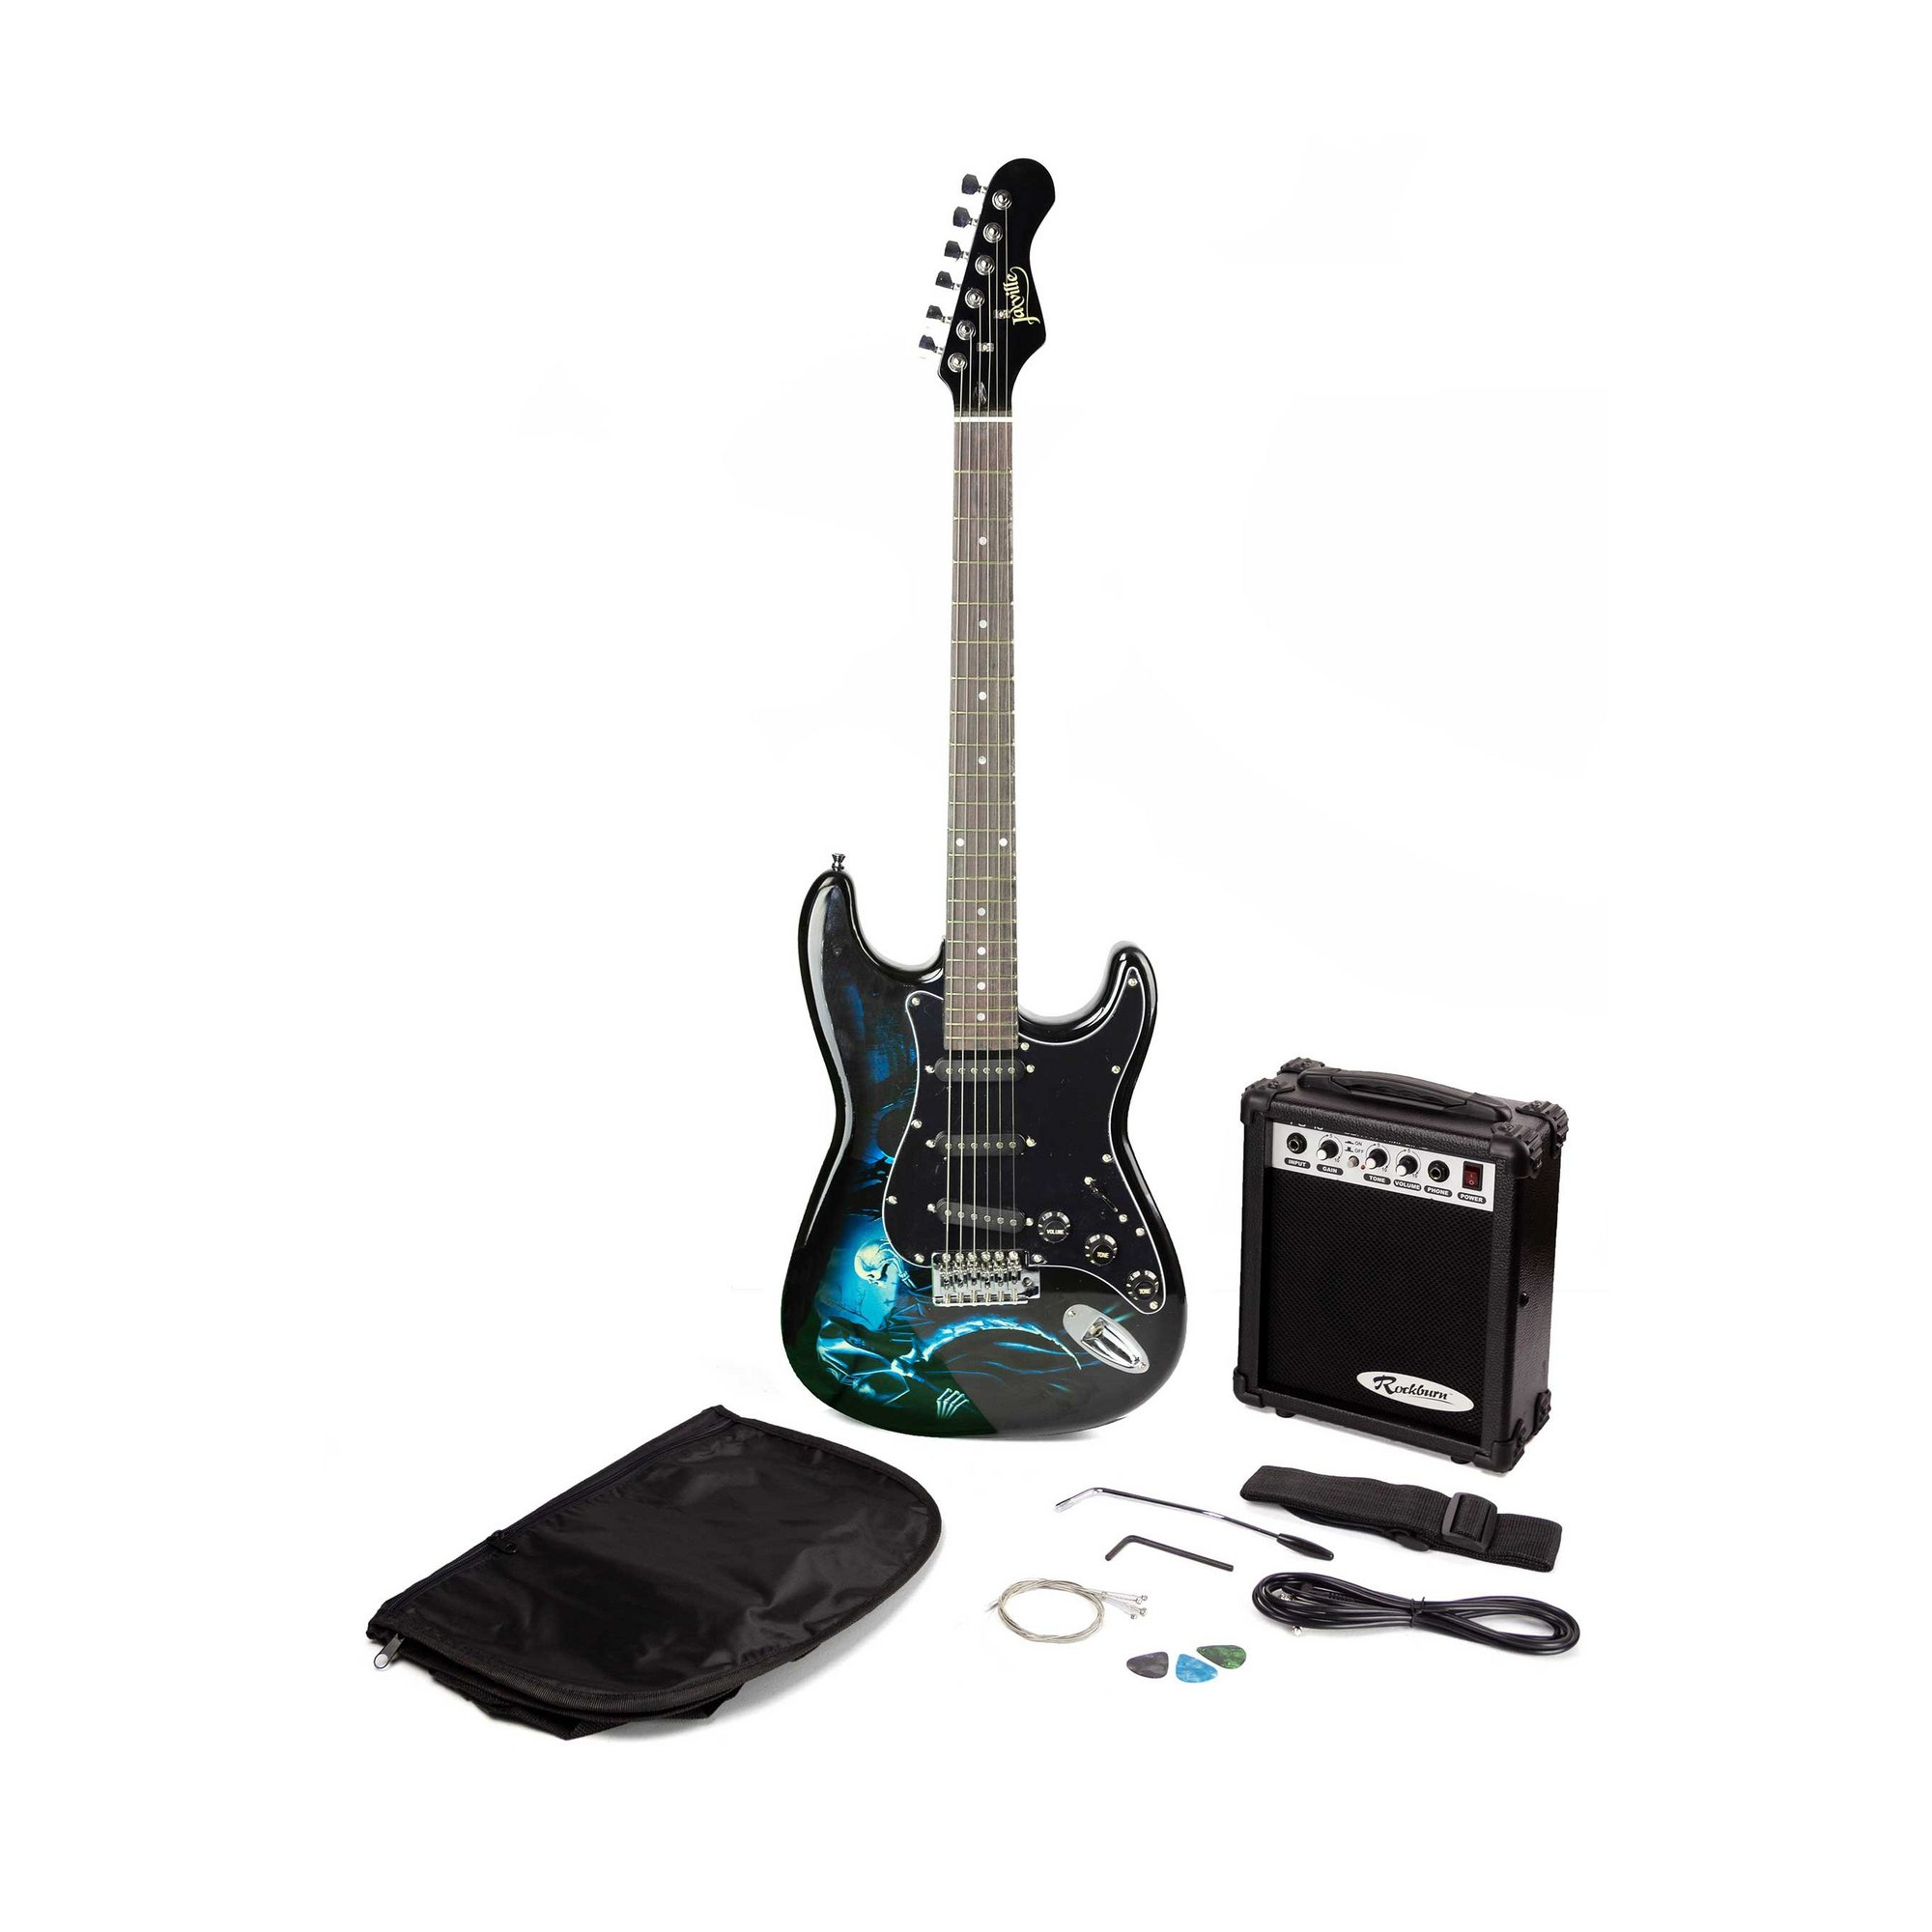 Image of Jaxville Hades St Style Electric Guitar